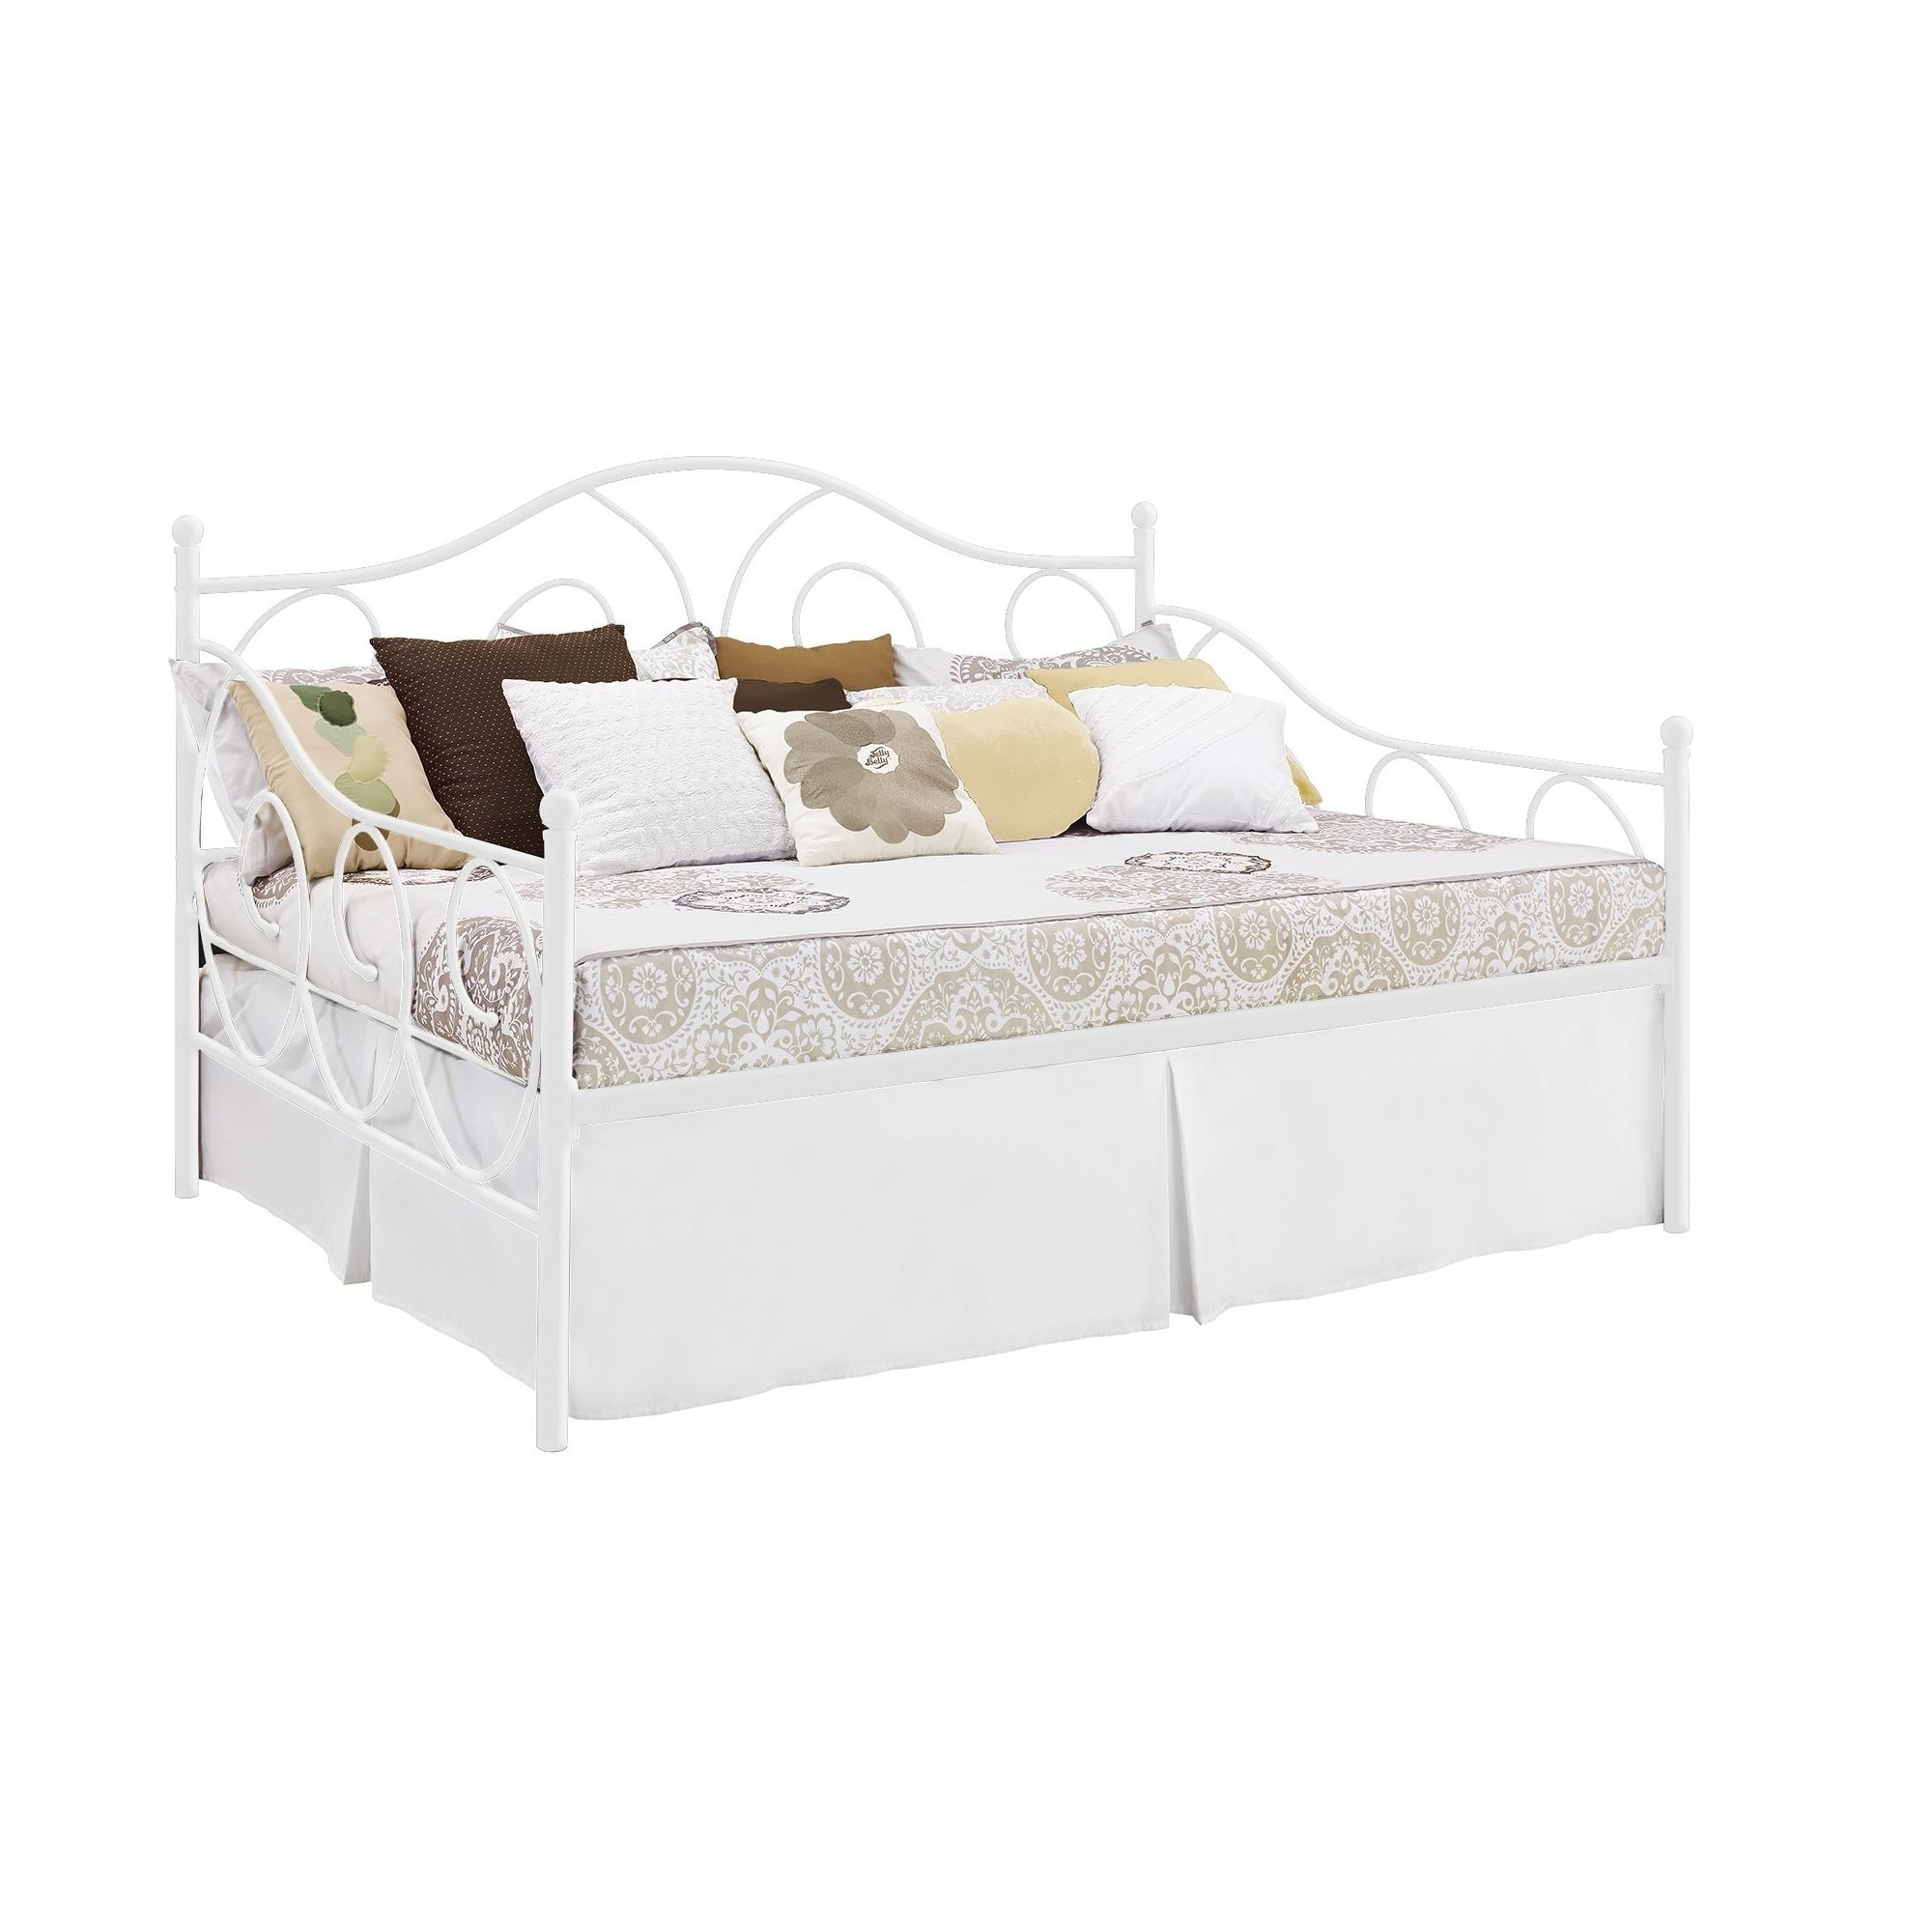 dhp victoria full size white metal daybed overstock shopping great deals on dhp beds. Black Bedroom Furniture Sets. Home Design Ideas